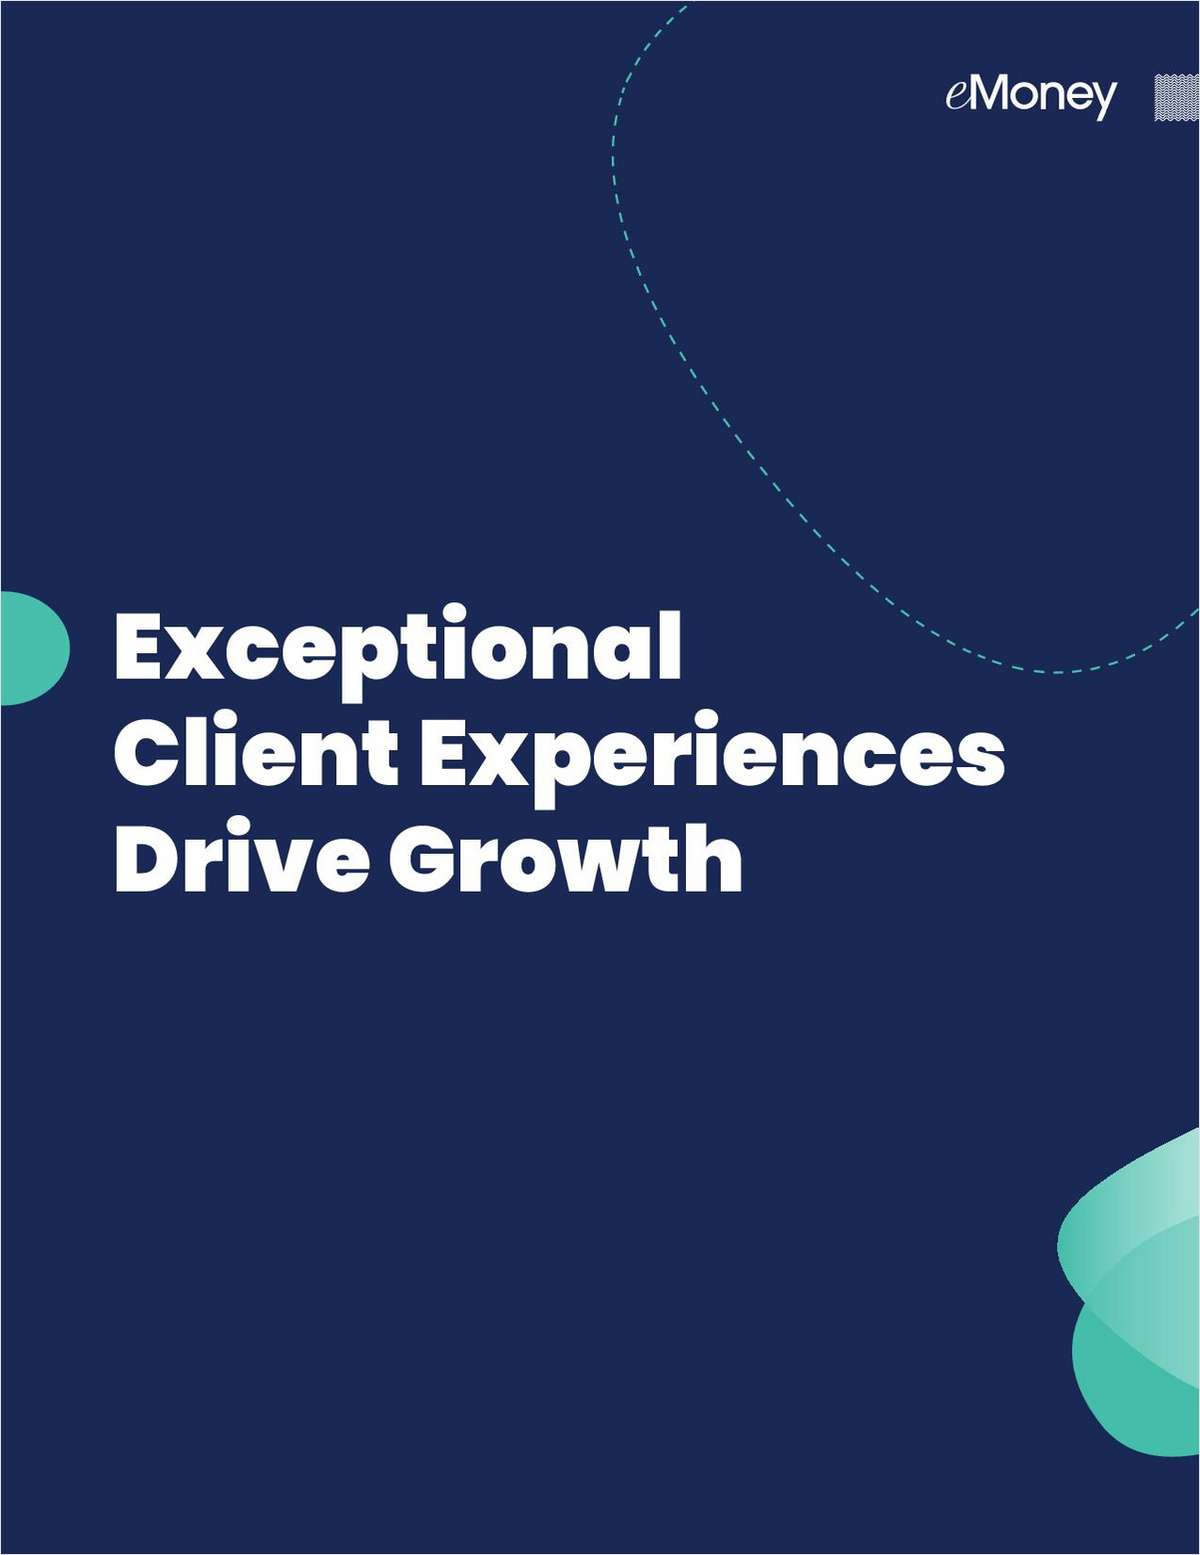 Exceptional Client Experiences Drive Growth